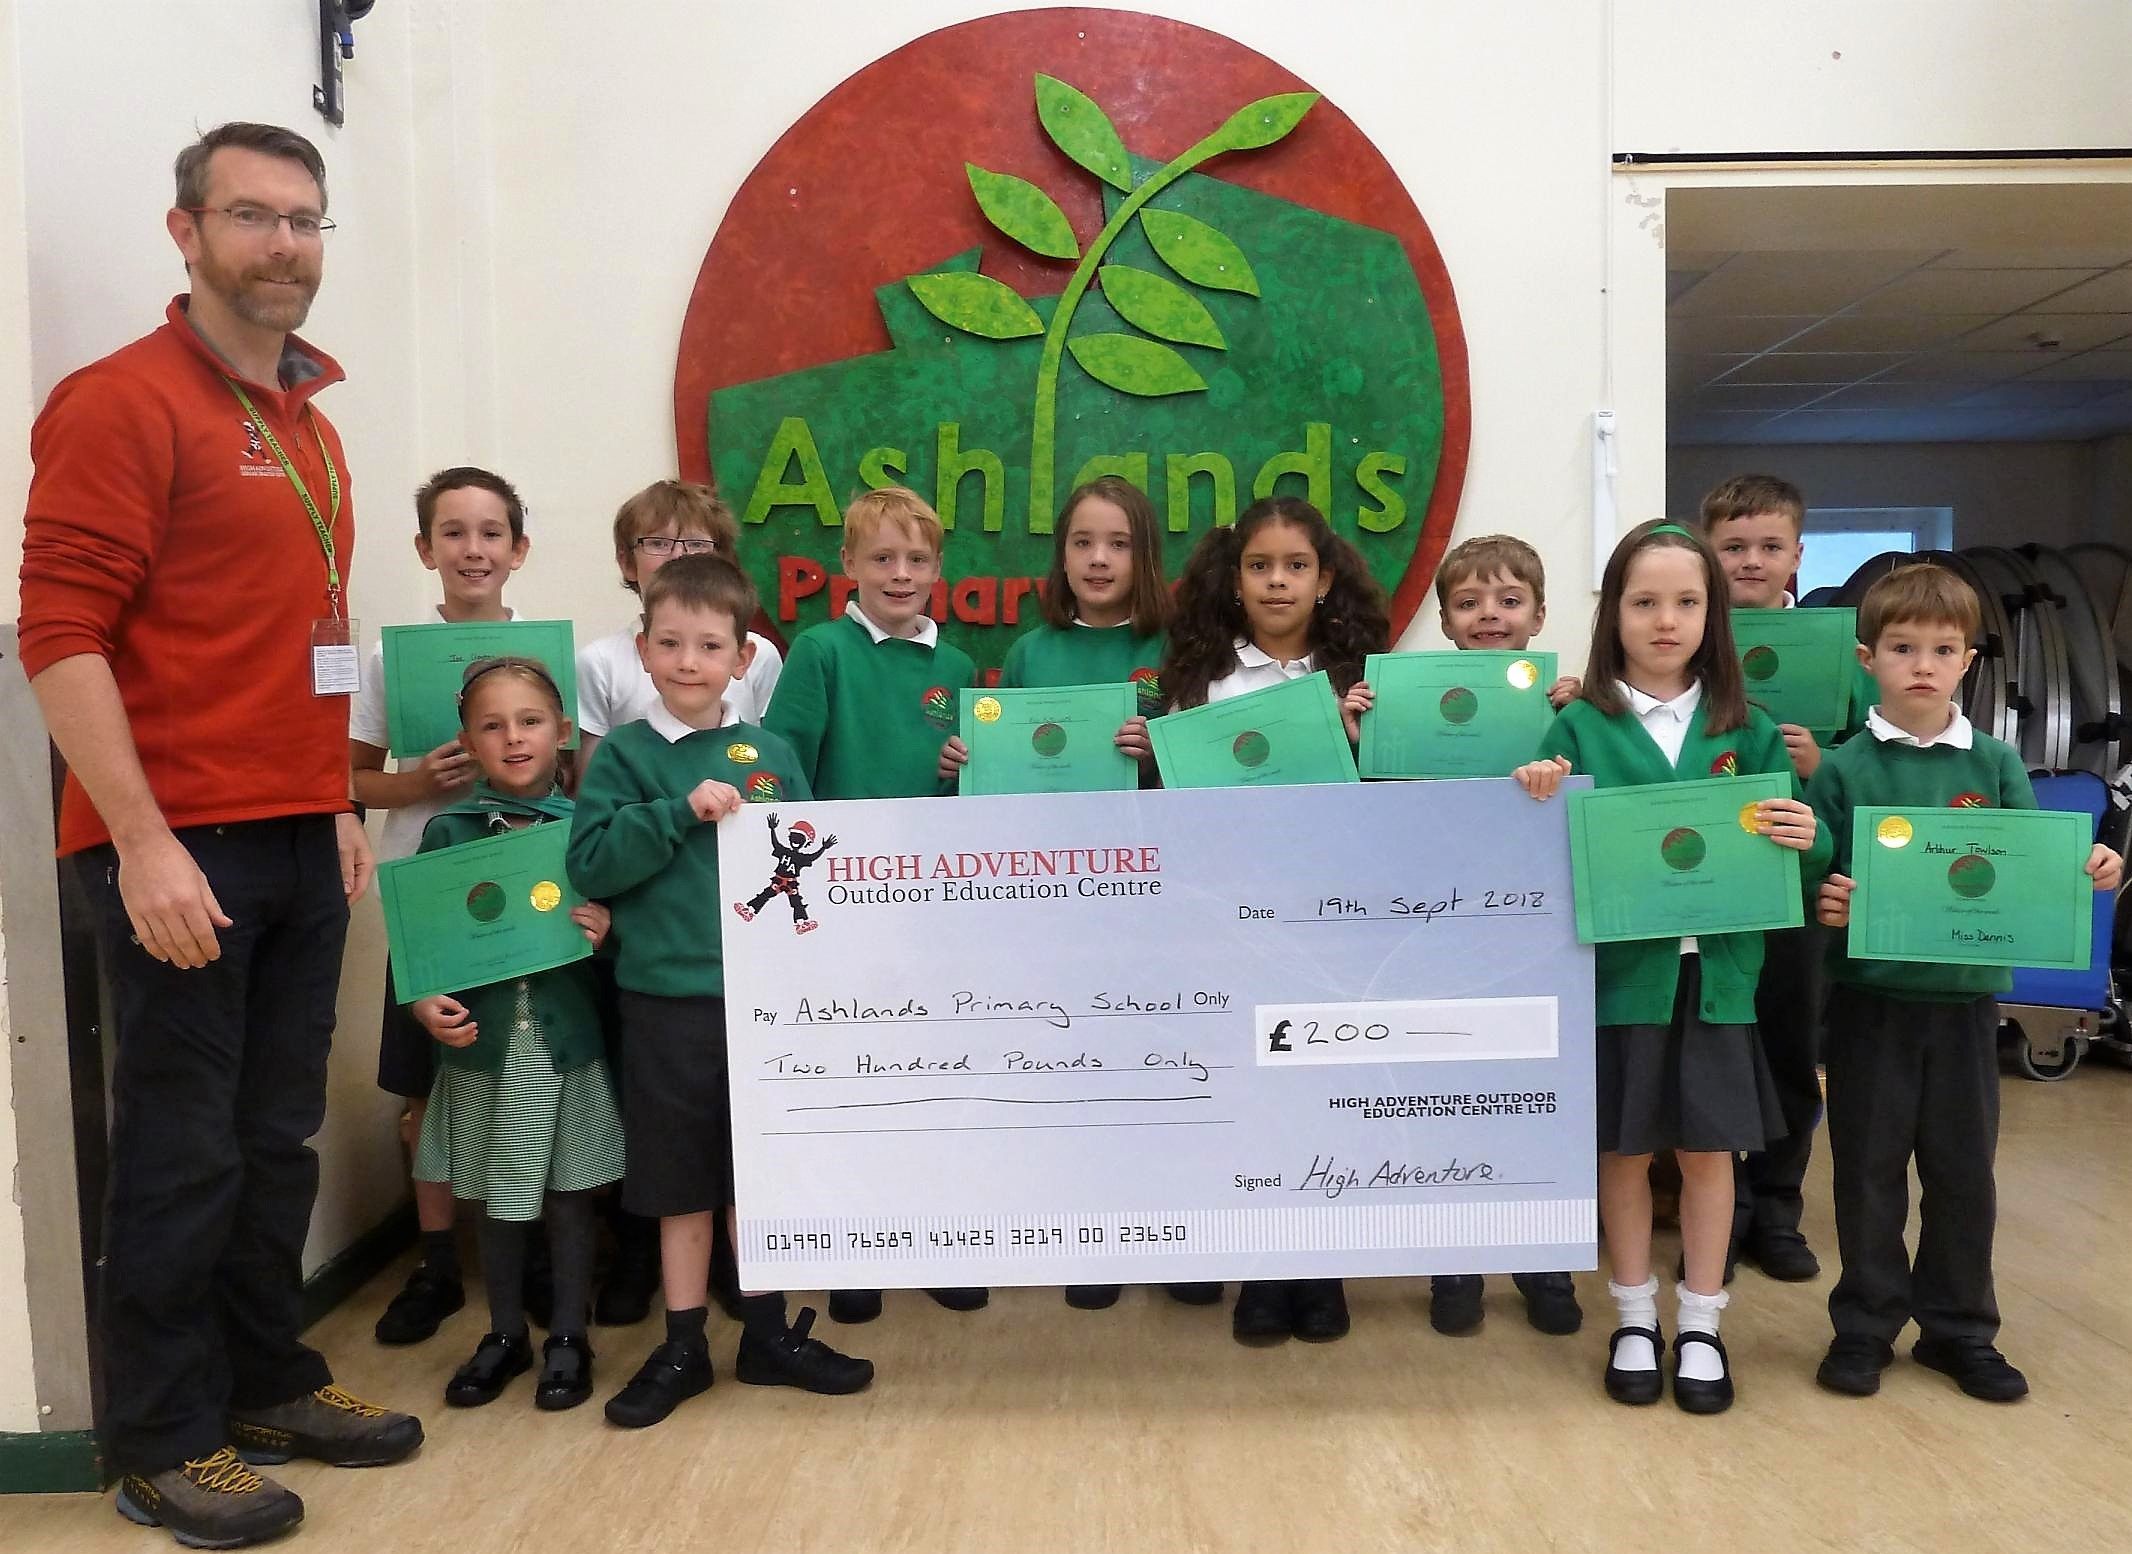 Pupils at Ashlands Primary School, Ilkley, receiving a donation from High Adventure Outdoor Education Centre